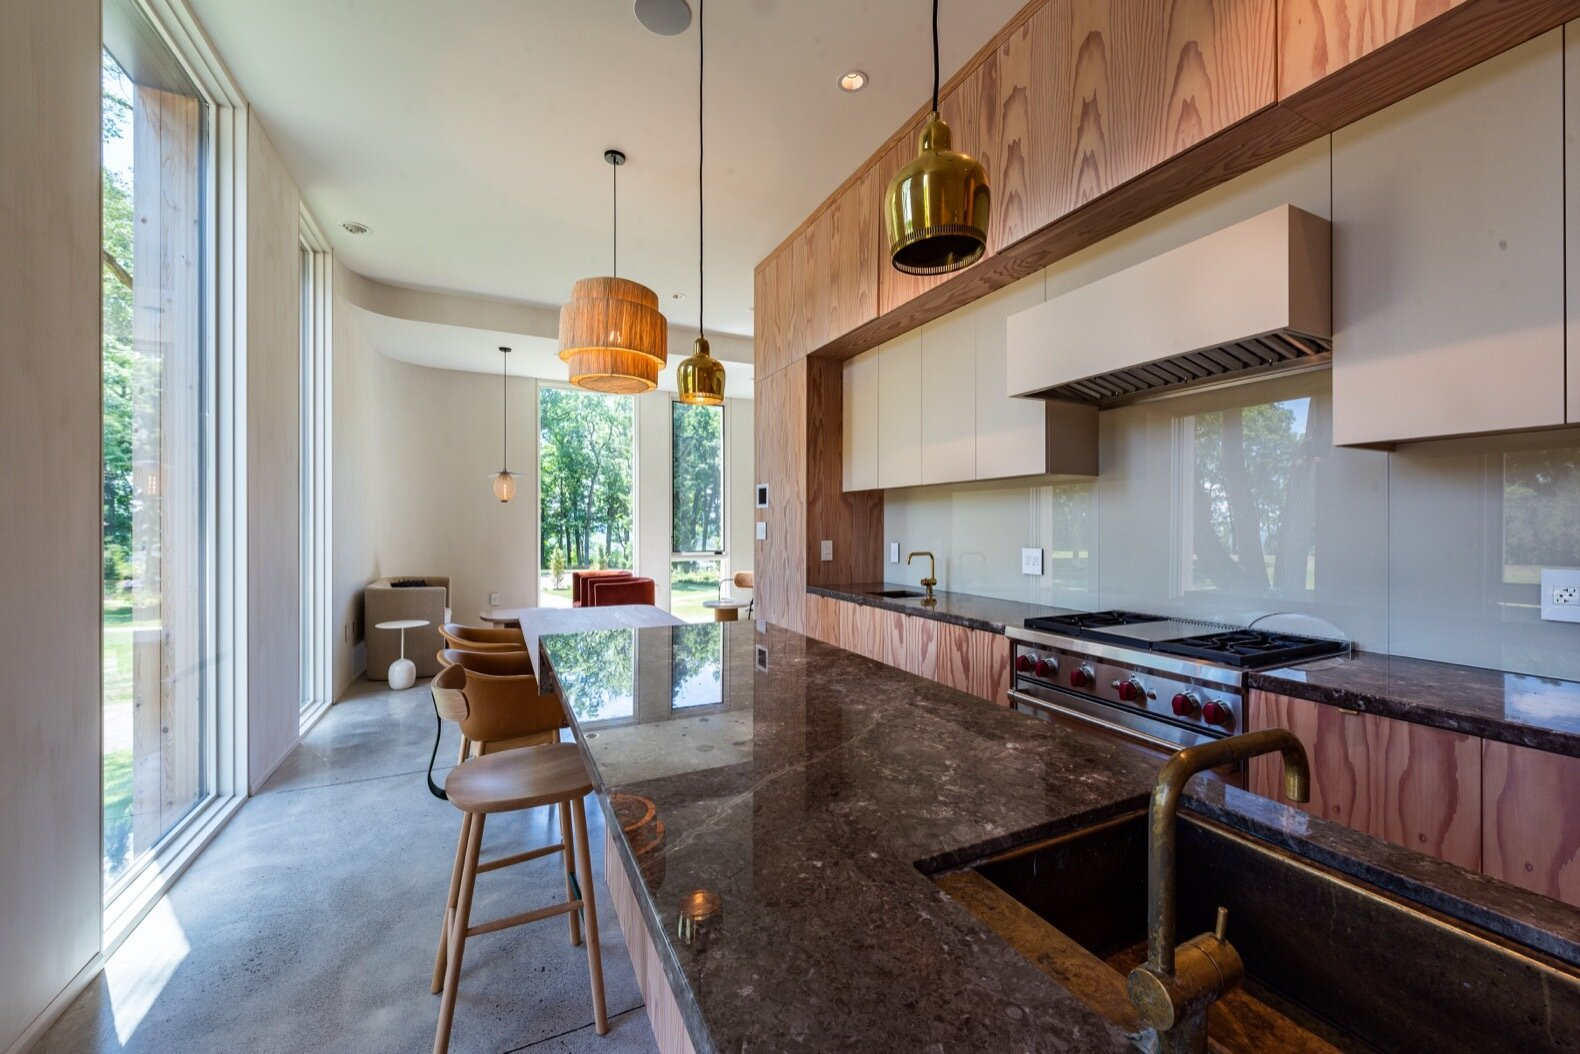 Fold House kitchen